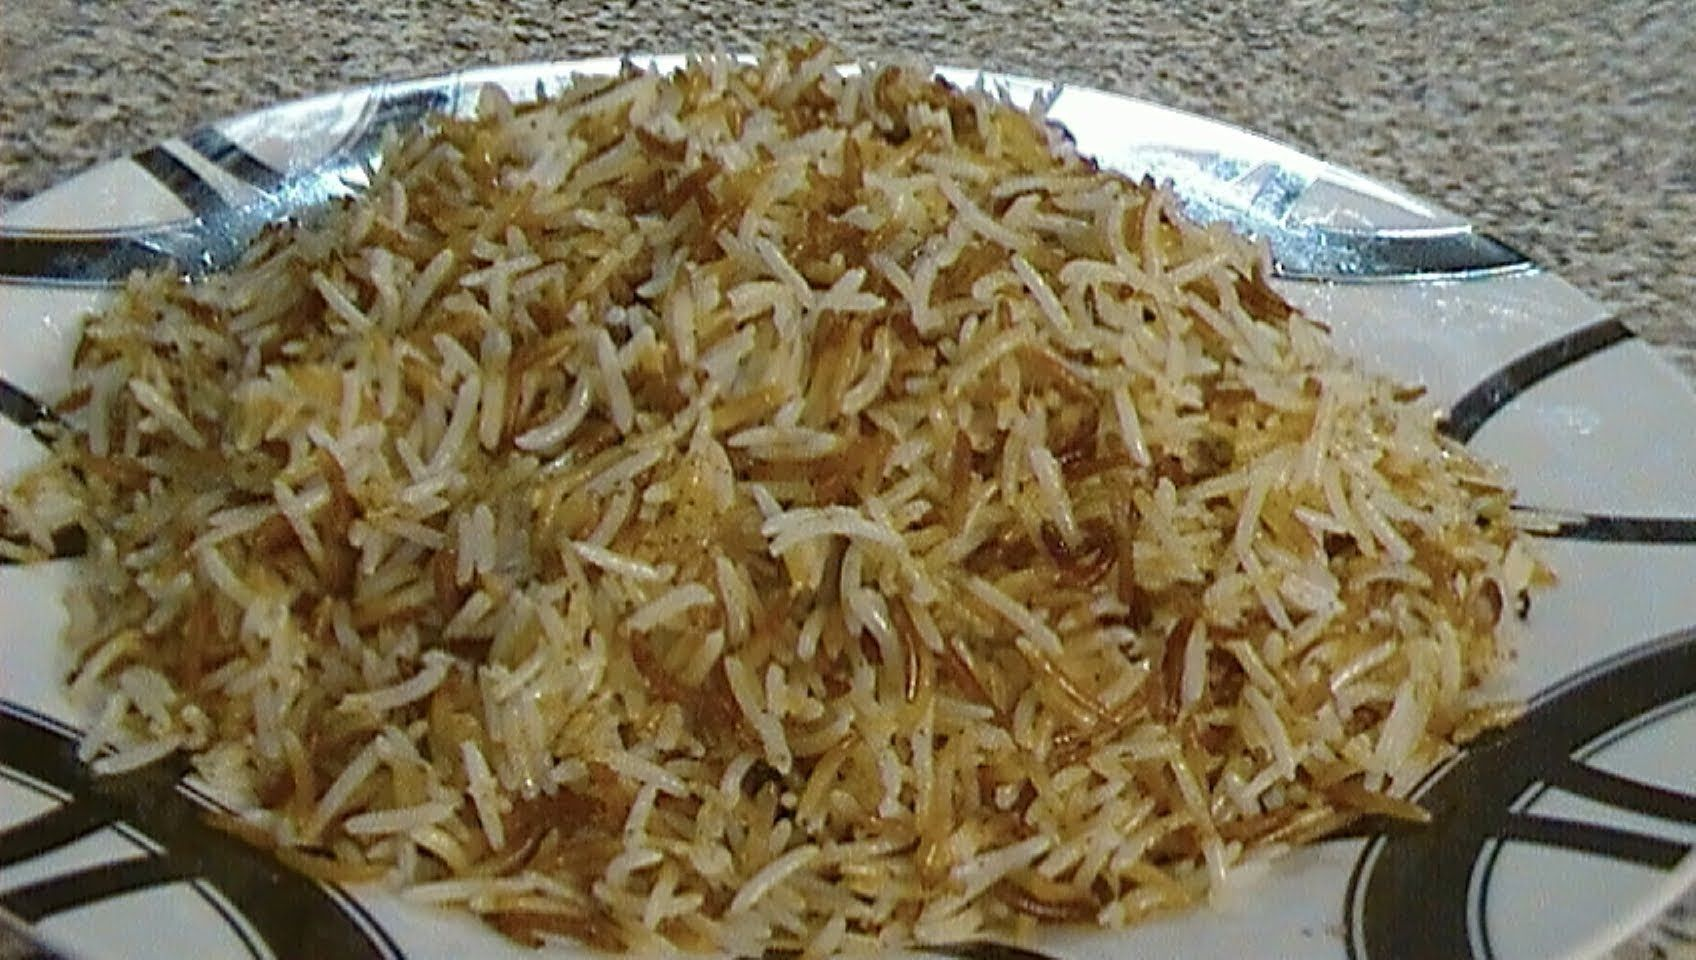 Afghani rice recipe in urduhindi by sehar syed sehar syed afghani rice recipe in urduhindi by sehar syed forumfinder Choice Image